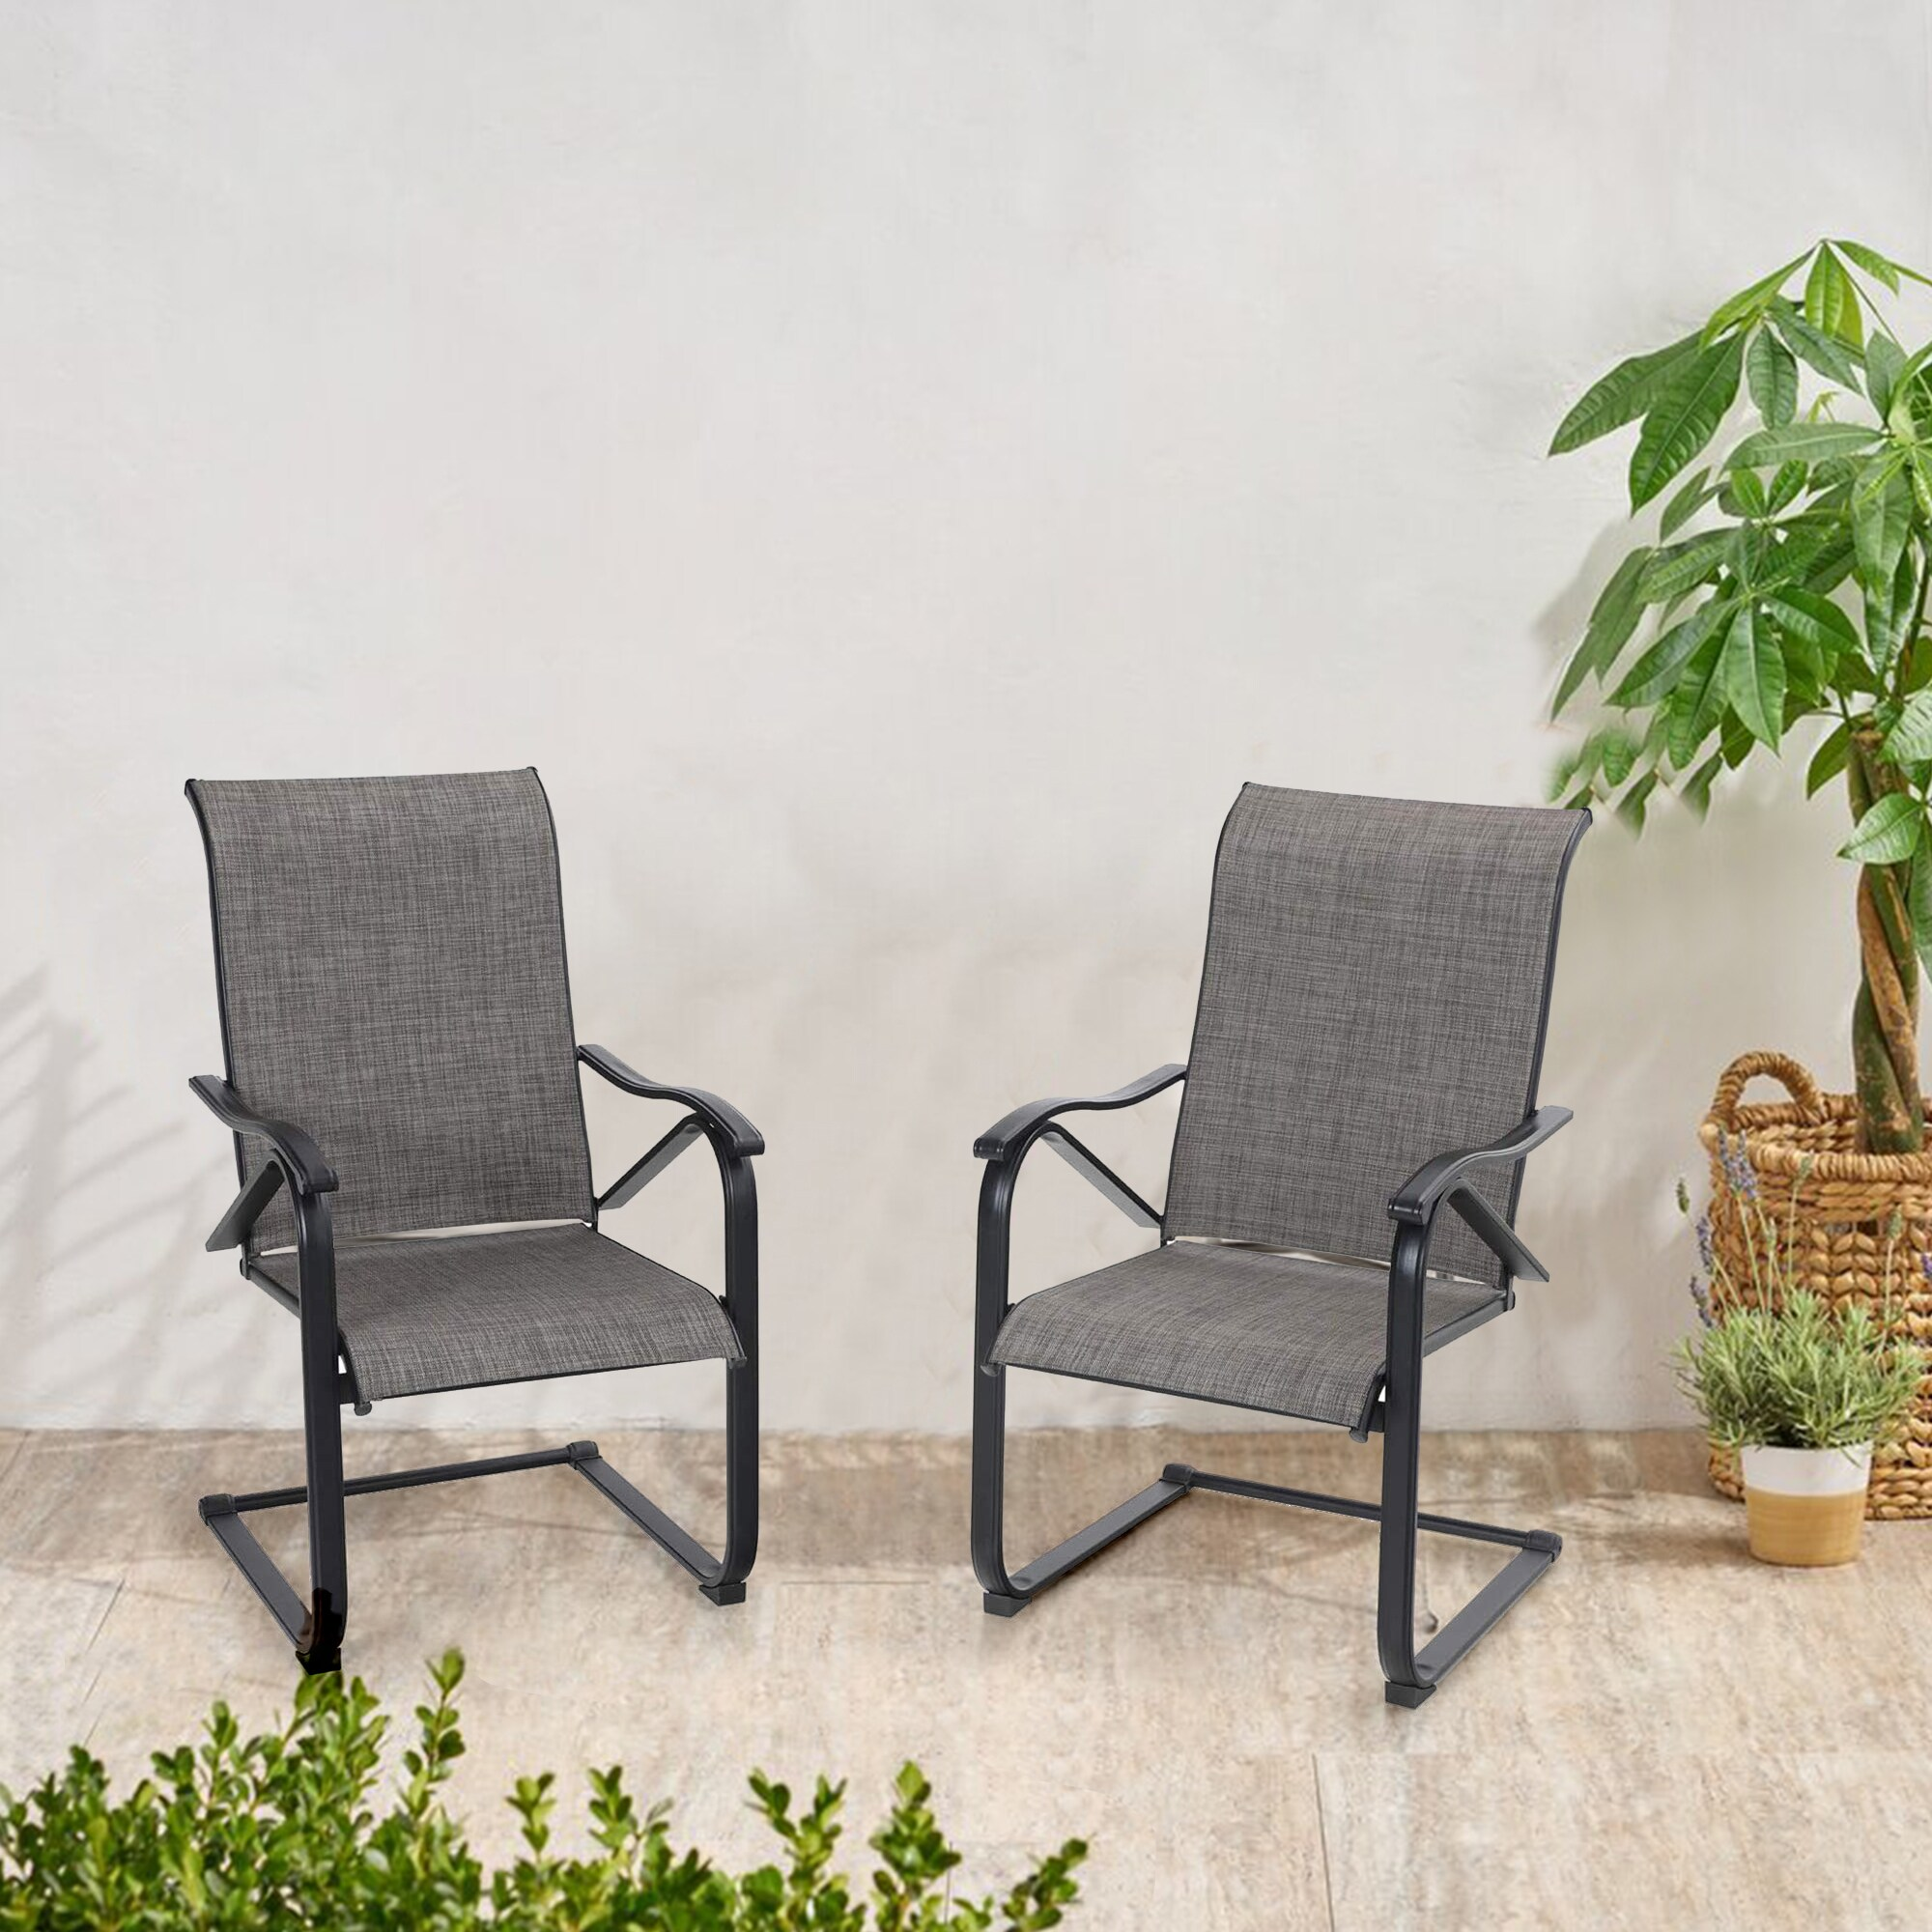 phi villa patio chairs c spring motion textilene metal chairs weather resistant outdoor furniture